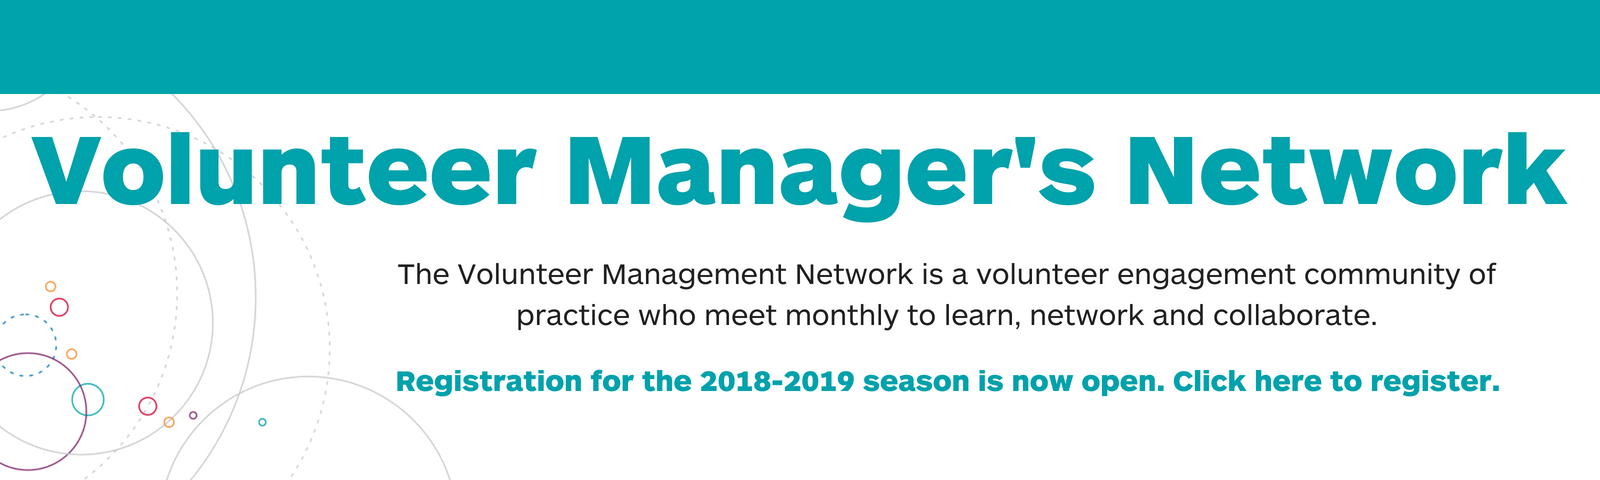 volunteer managers network graphic